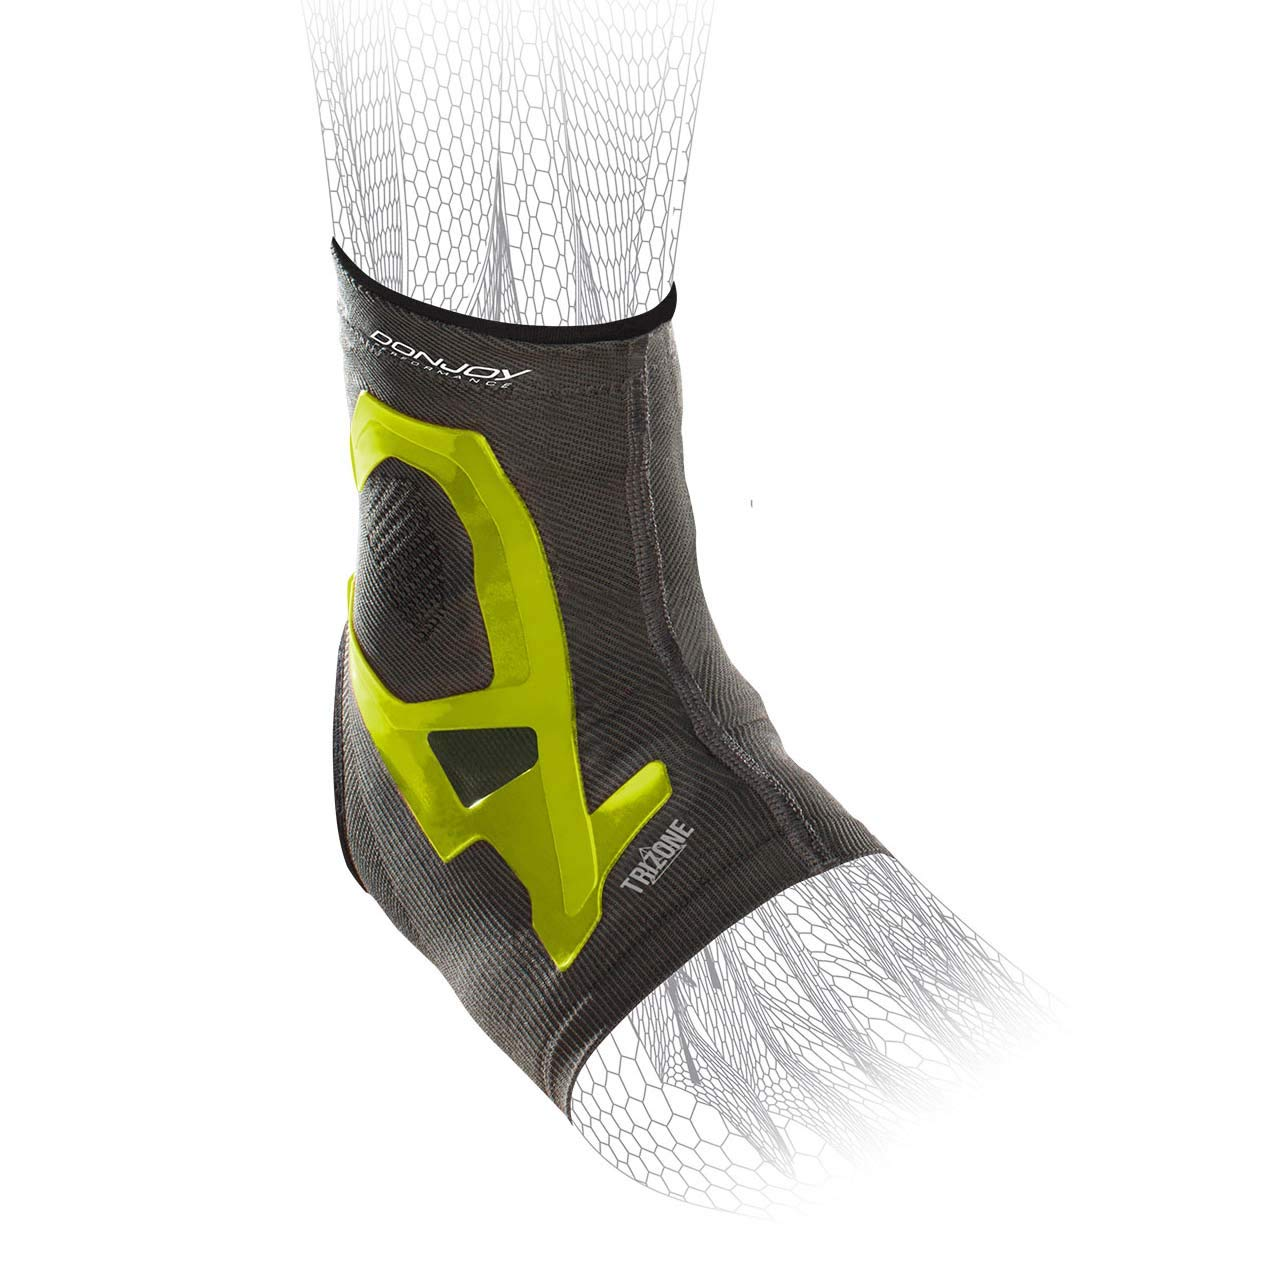 DonJoy Performance TRIZONE Compression: Ankle Support Brace, Slime Green, Large by DonJoy Performance